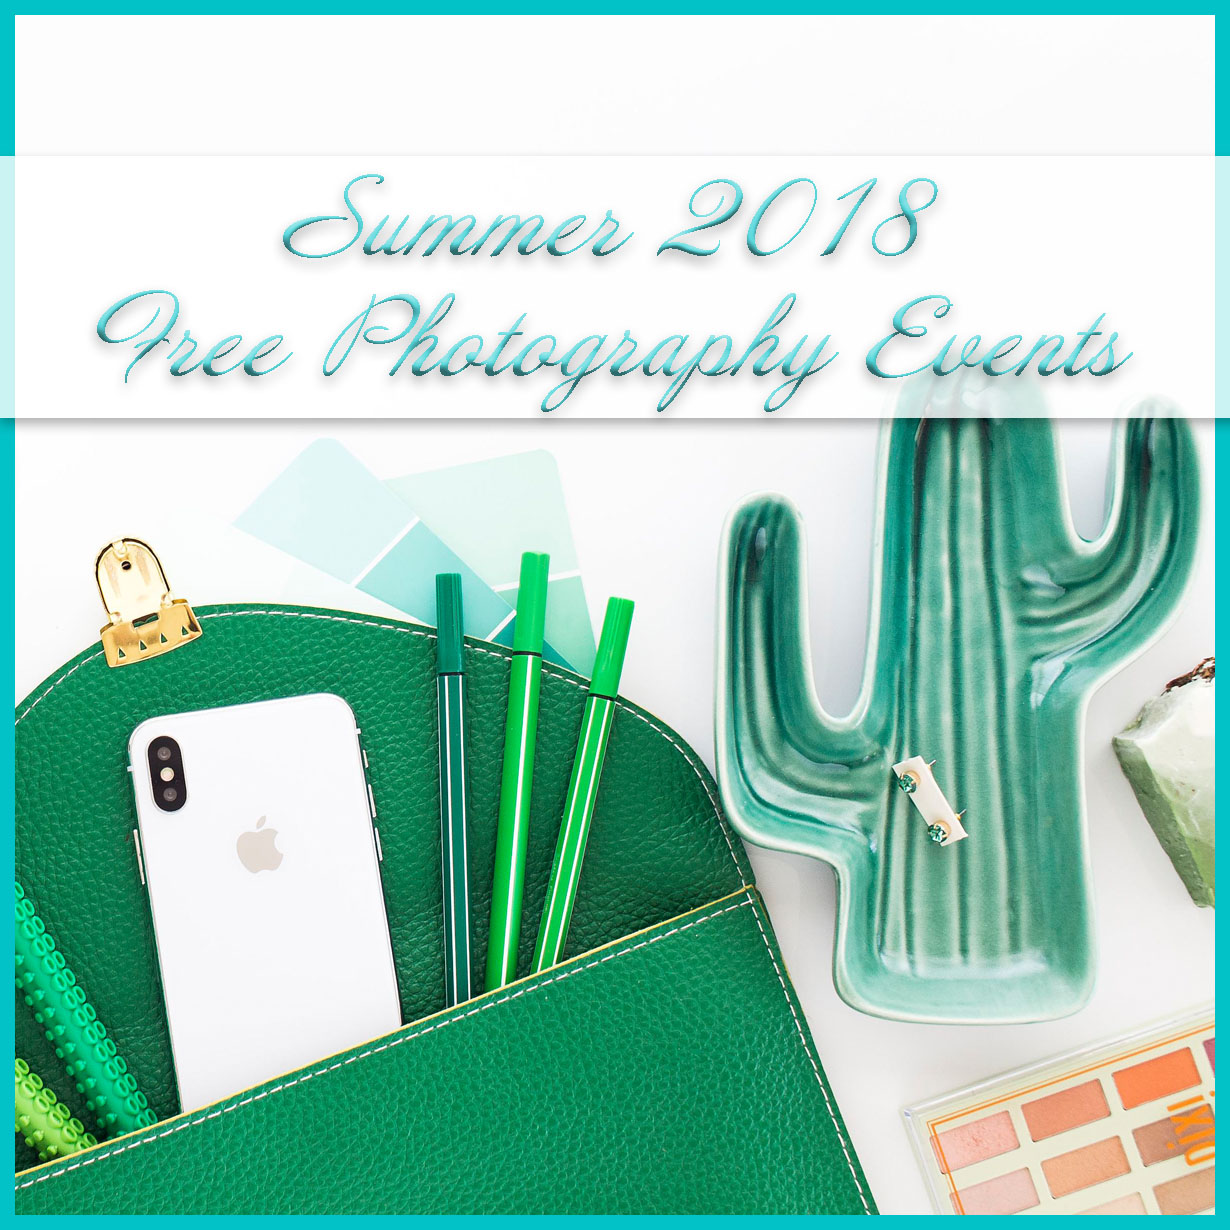 Summer 2018 Photography Events